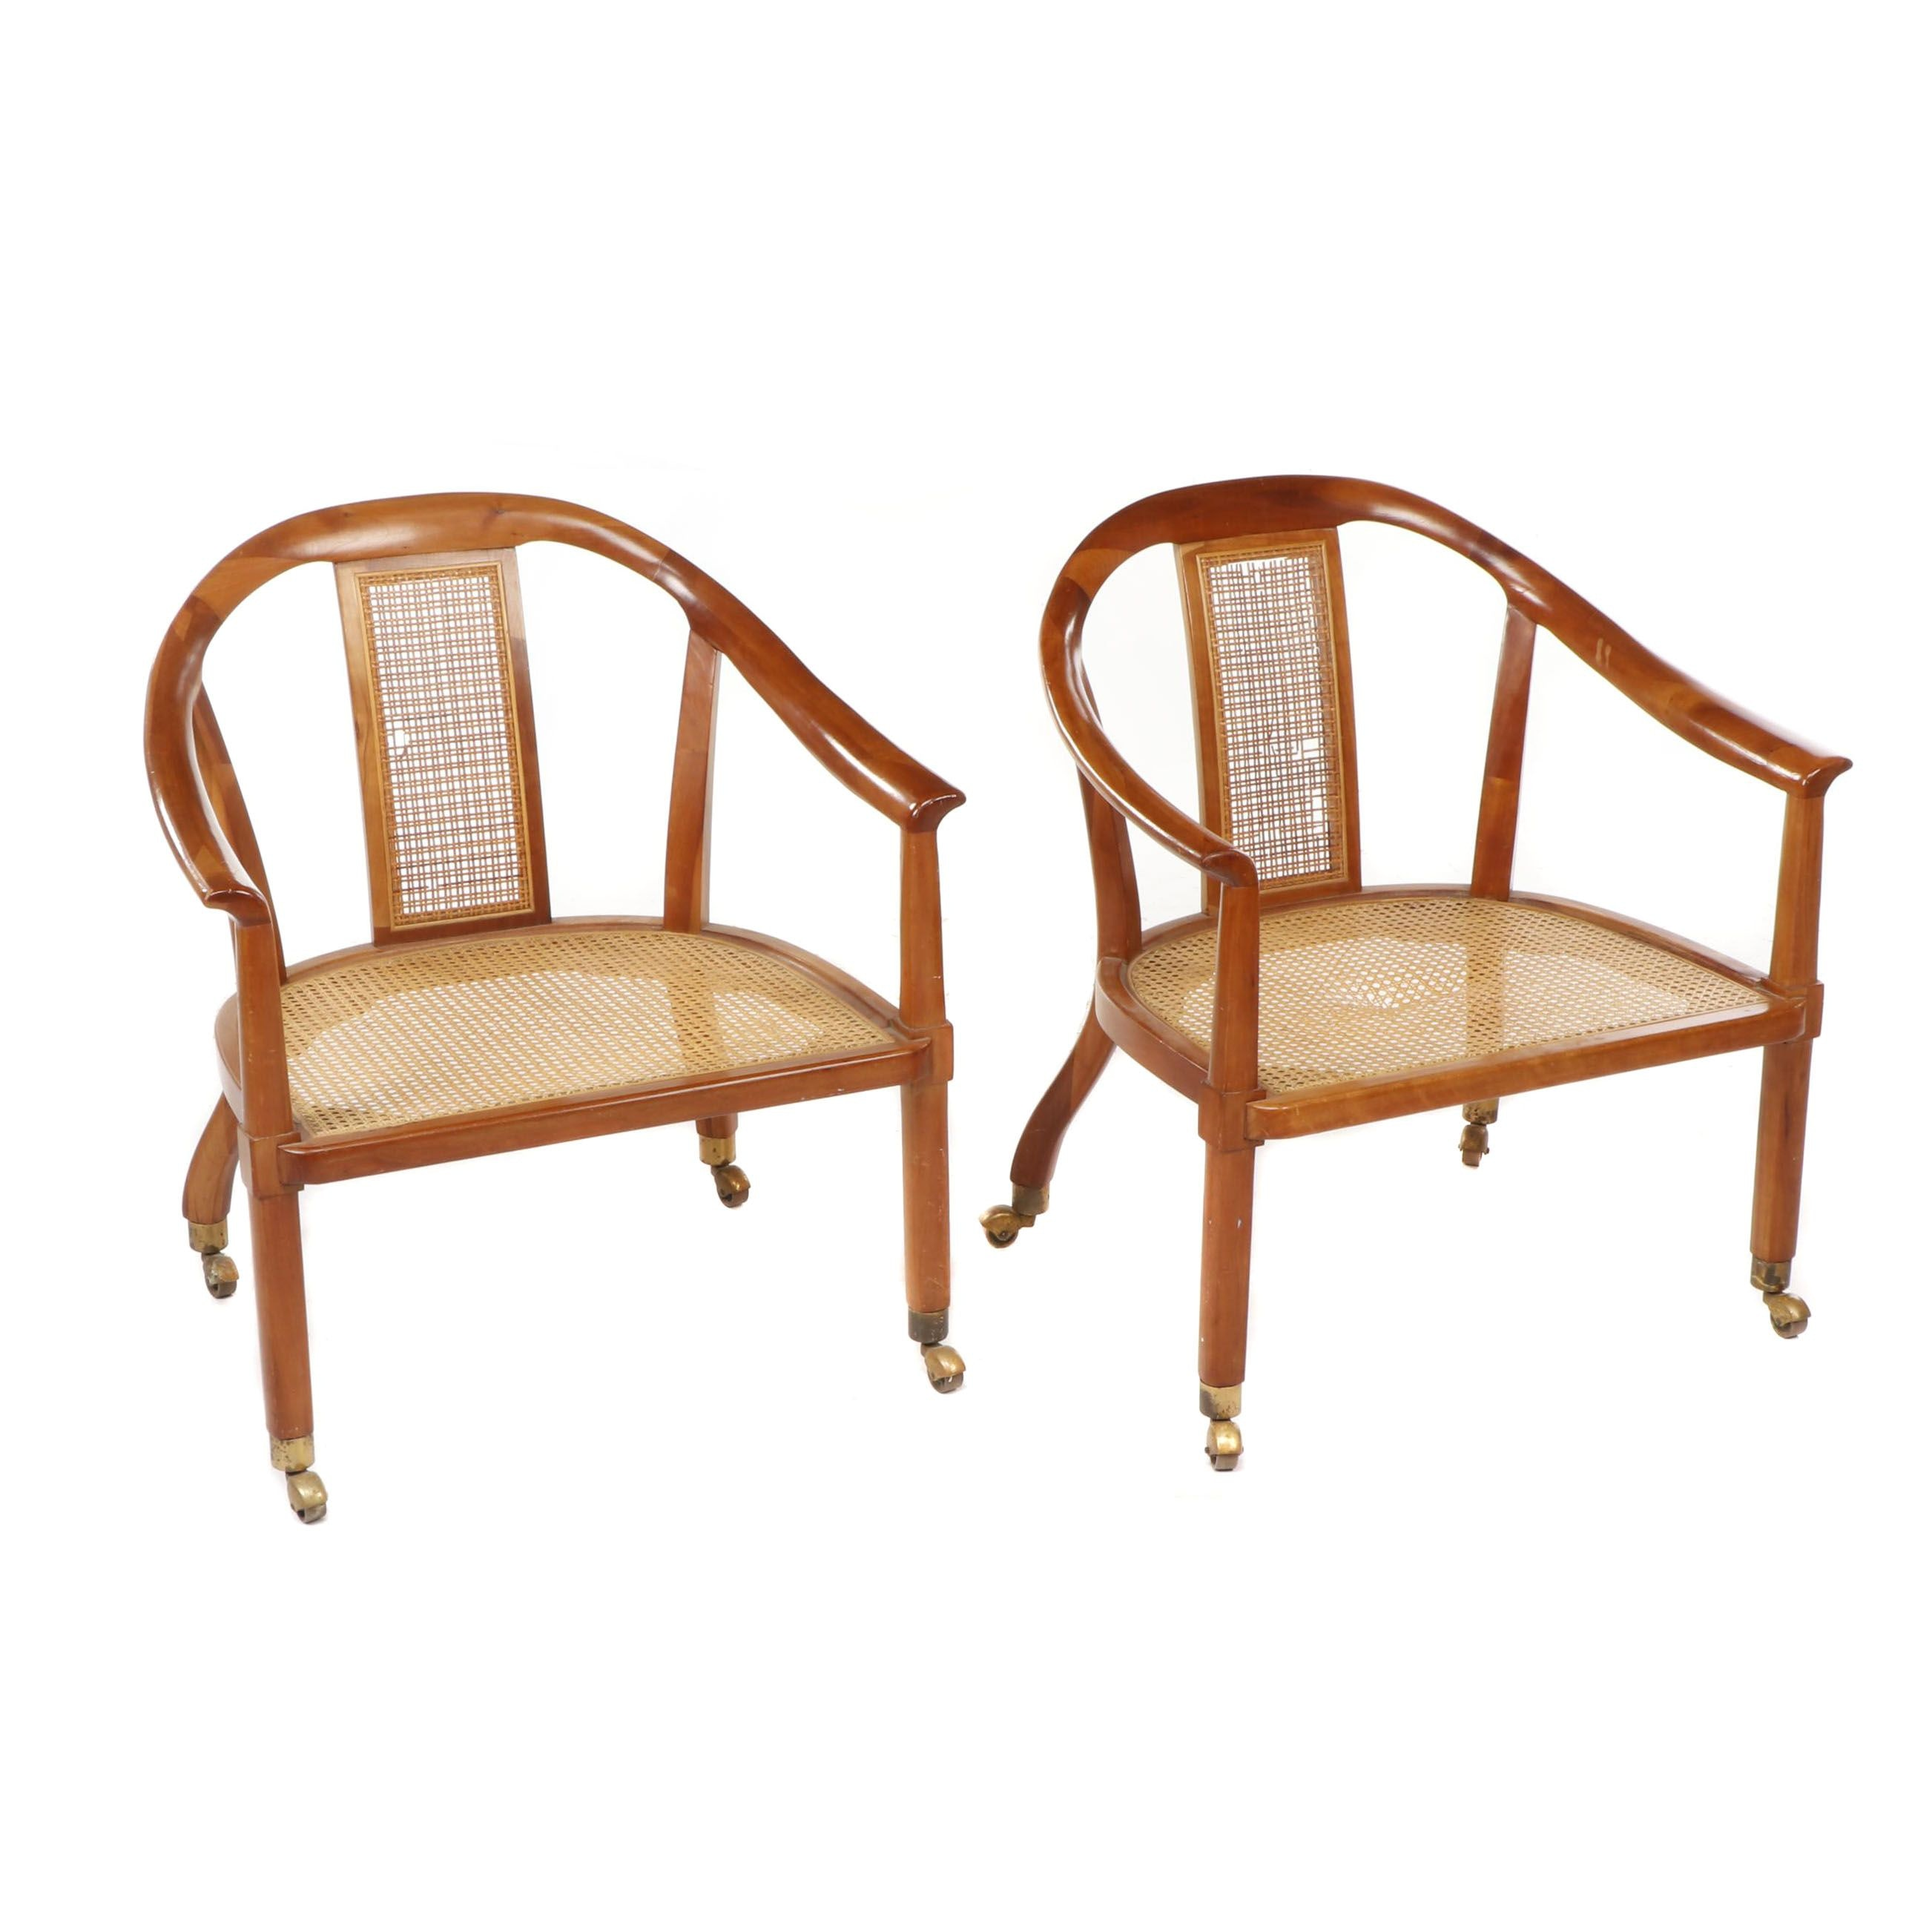 Wood and Cane Horseshoe Pull-Up Chairs on Casters, Mid 20th Century